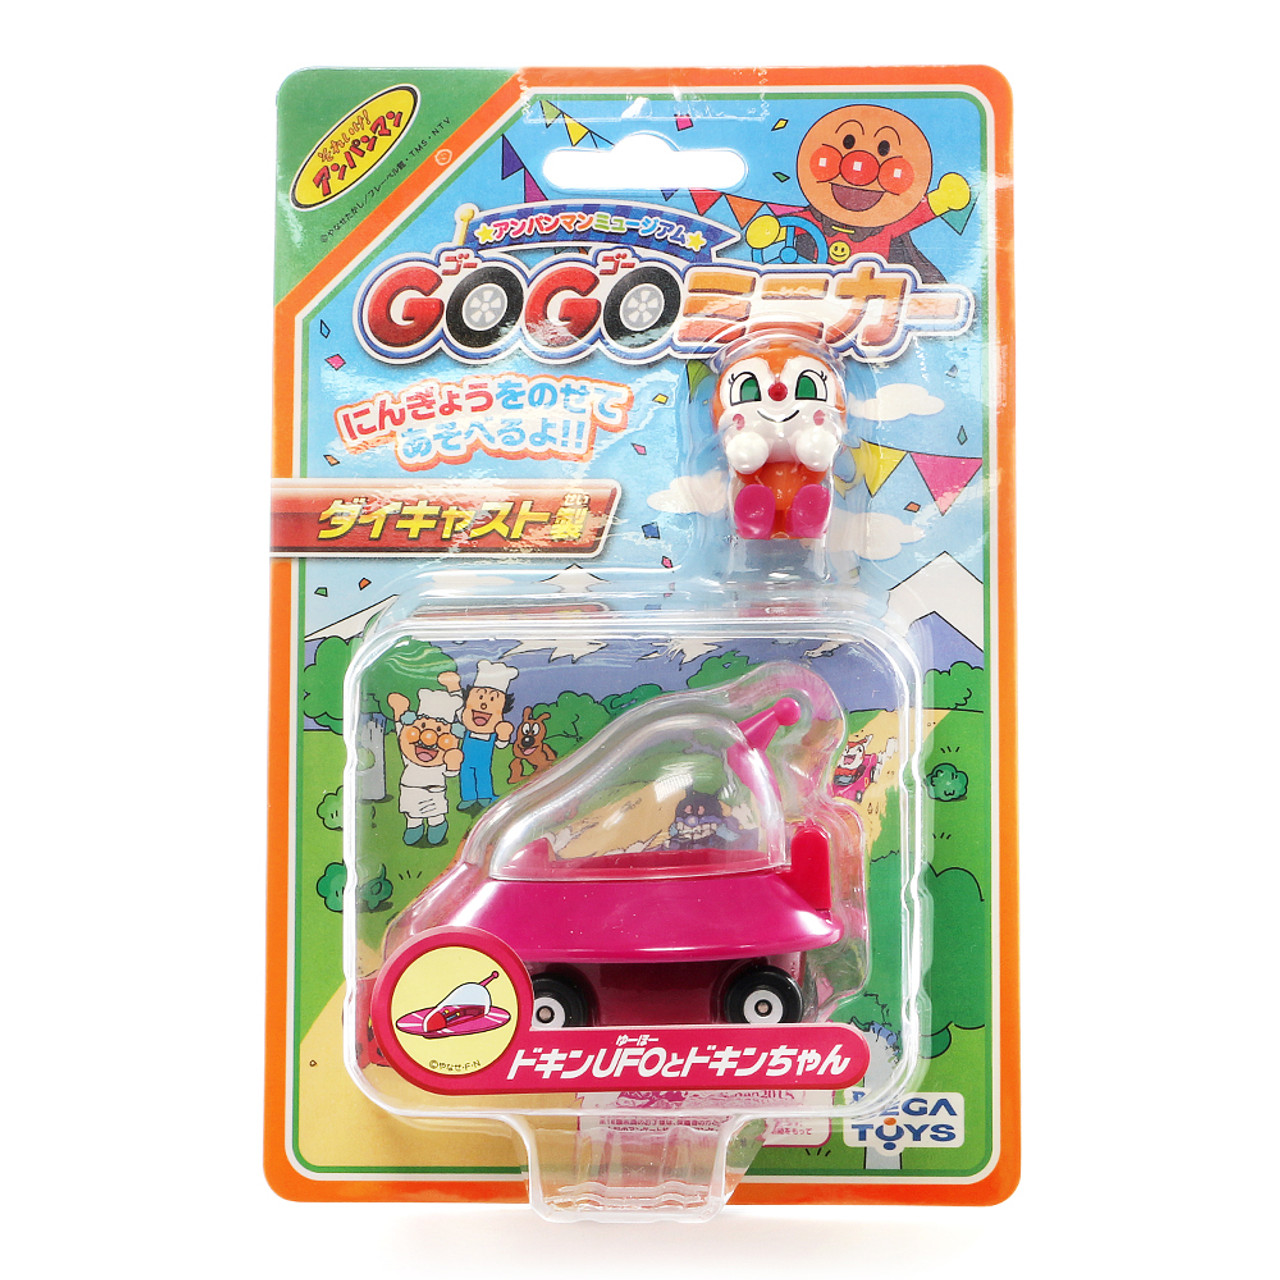 Sega Toys Anpanman Museum Go Go Mini Vehicle Carry Hero - Dokin-chan UFO car ( Complete Packing )